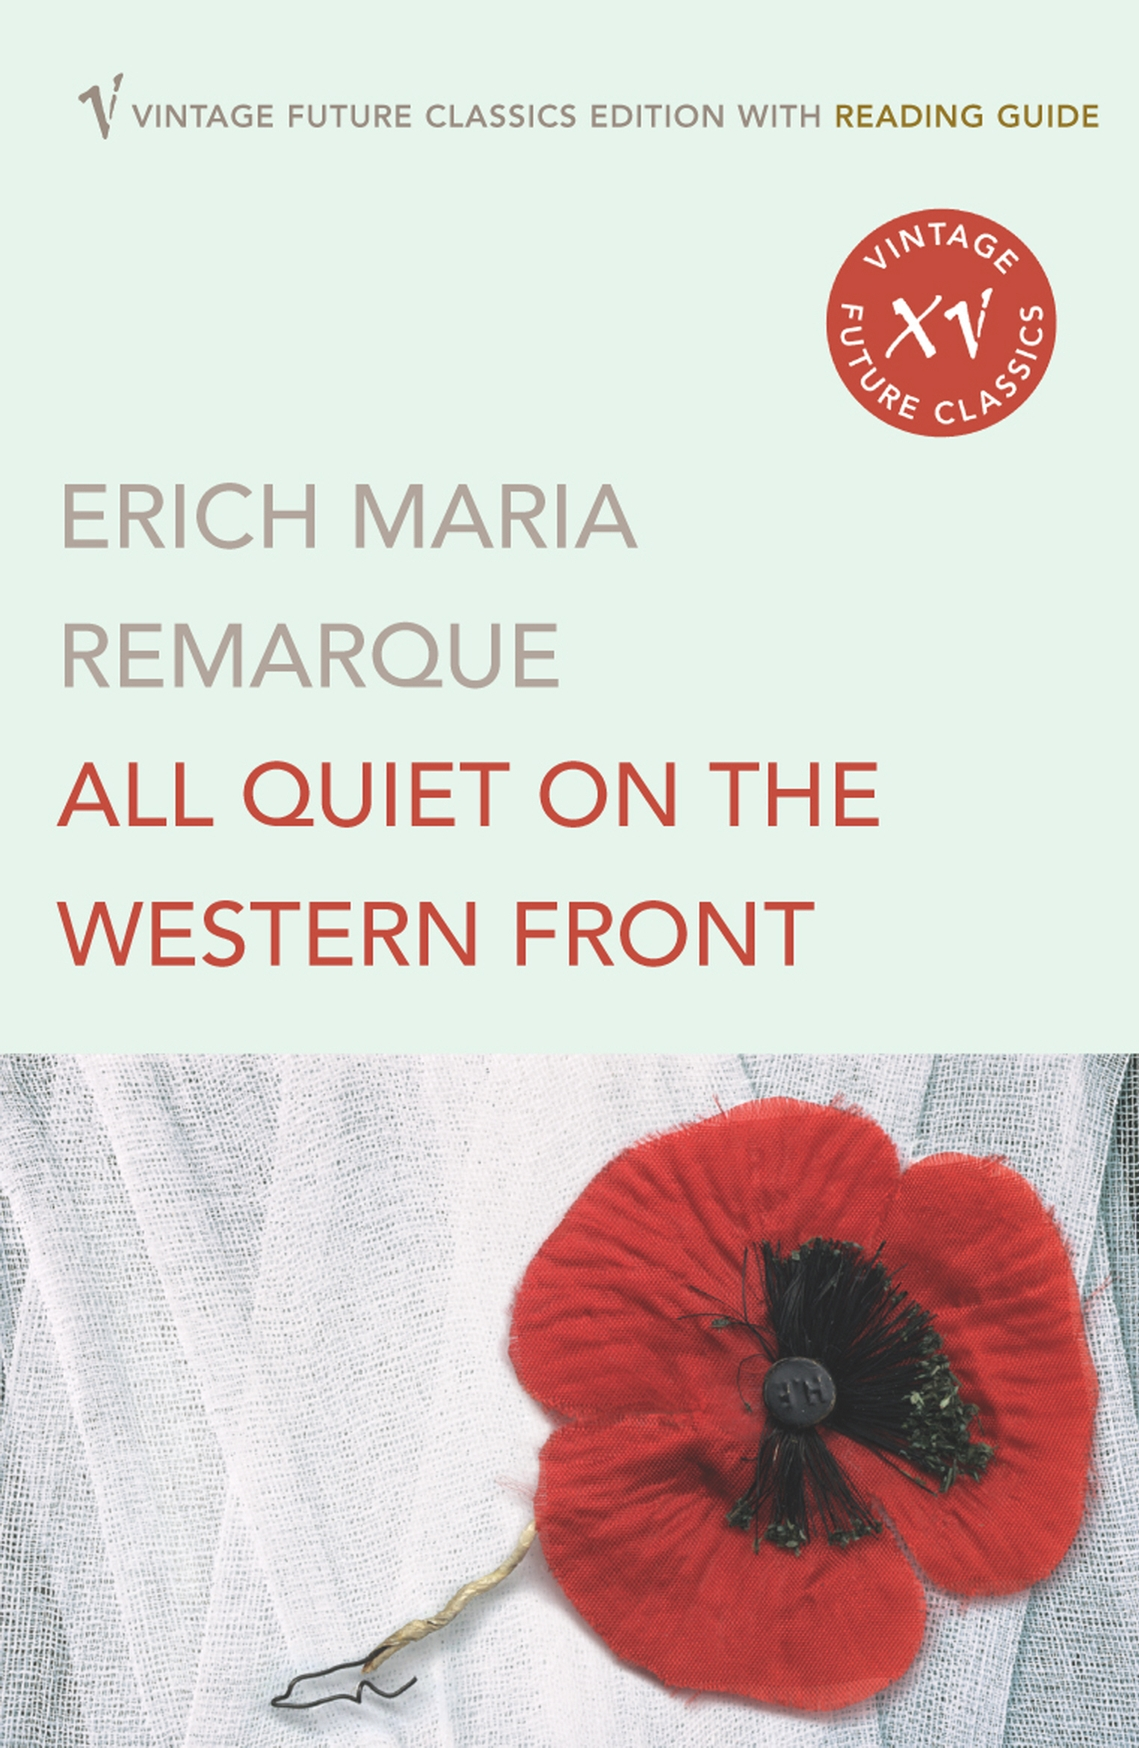 an analysis of all quiet on the western front an anti war novel by erich remarque An anti-war novel often portrays many of the bad aspects and consequences of war erich remarques all quiet on the western front is a novel set in the first world war that is against war remarque describes the terrible reality of the war, focusing on the horrors and involved.